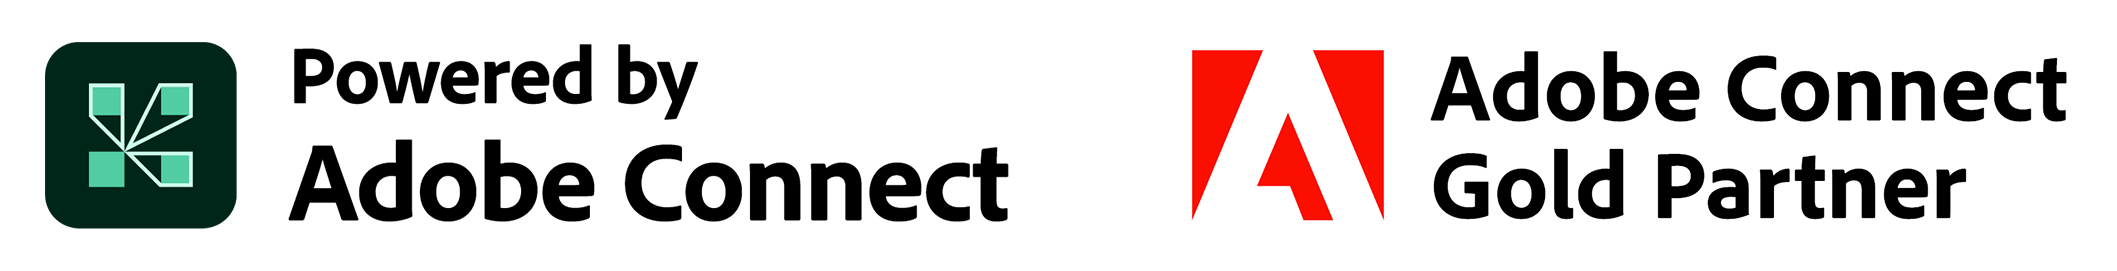 Adobe Connect Gold Partner